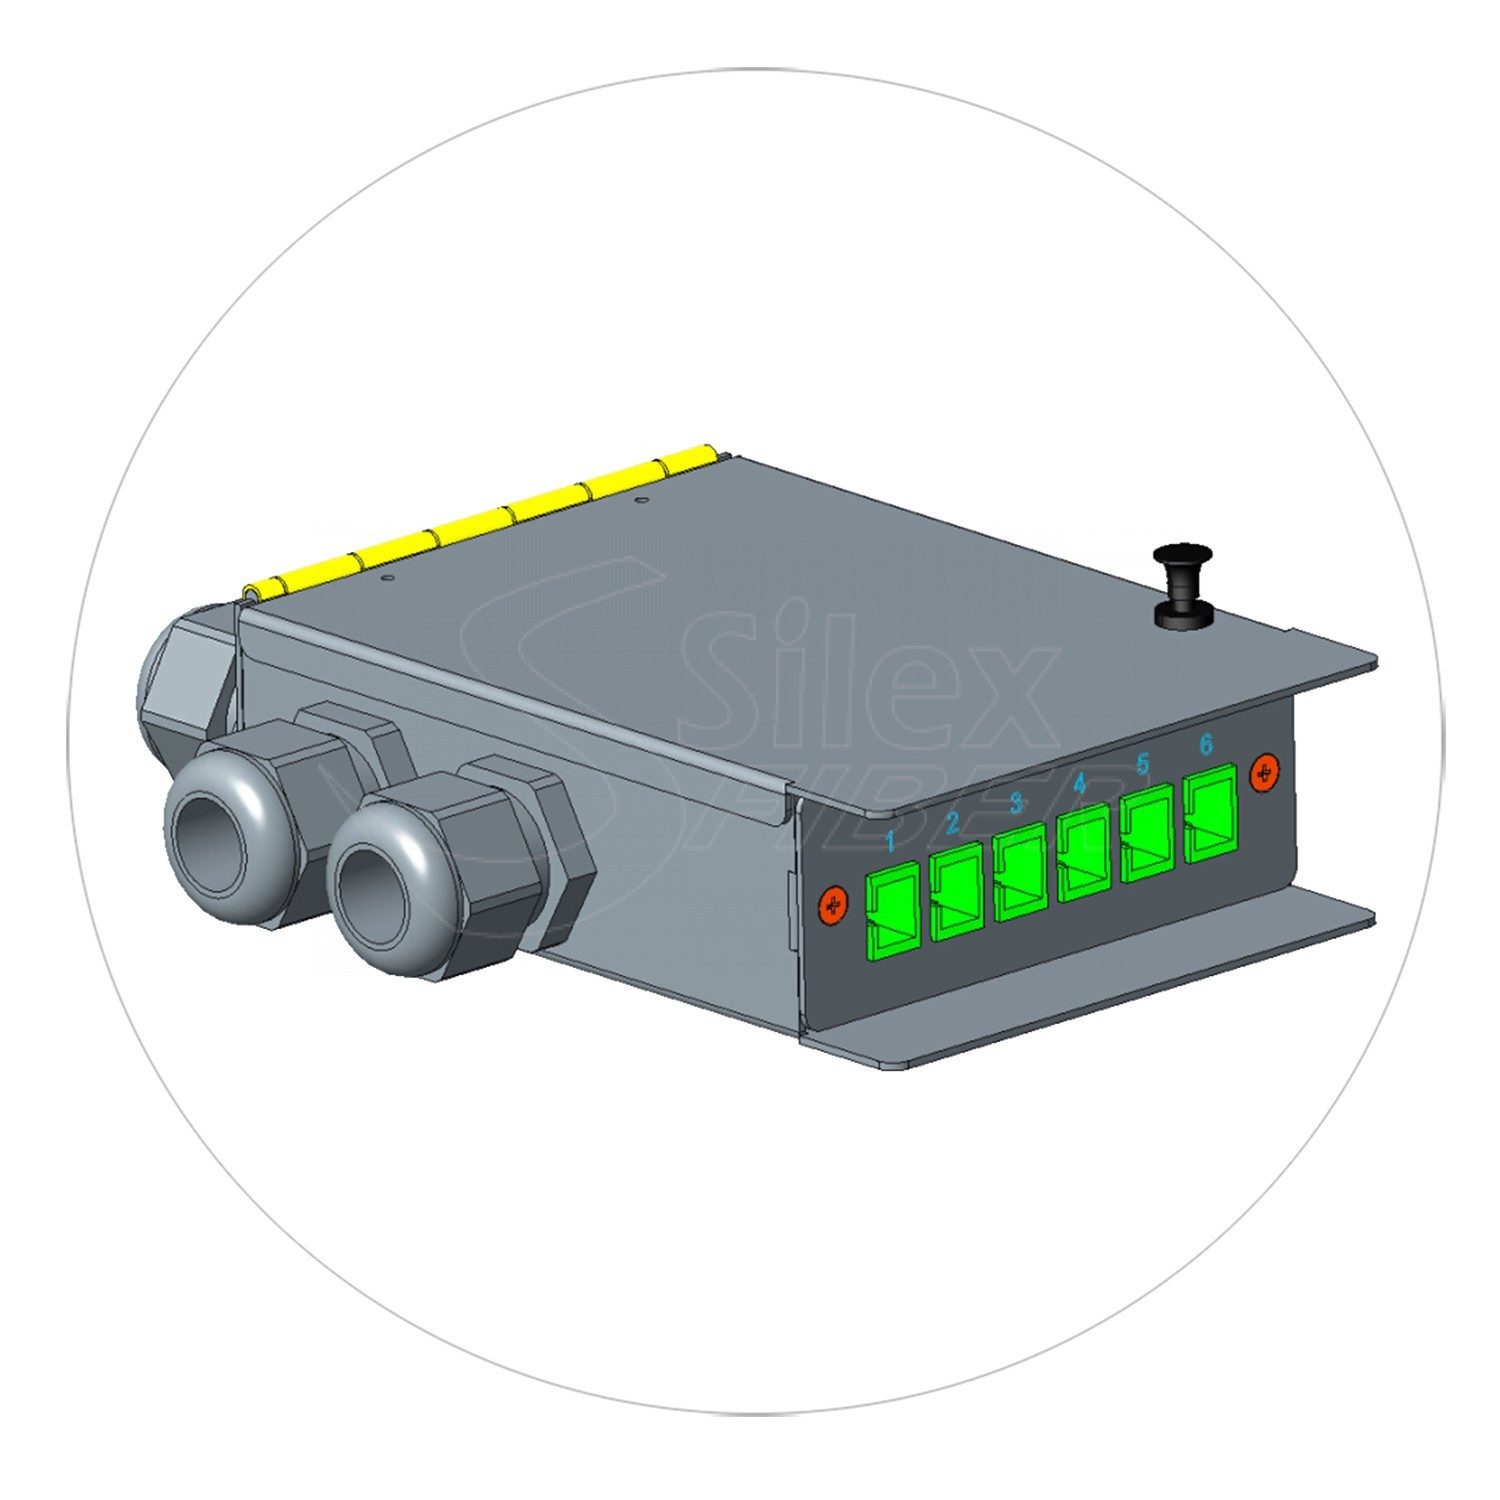 Caja Metalica Patchpanel Mural y Carril DIN SLXBOX-Y 6SC-12LC